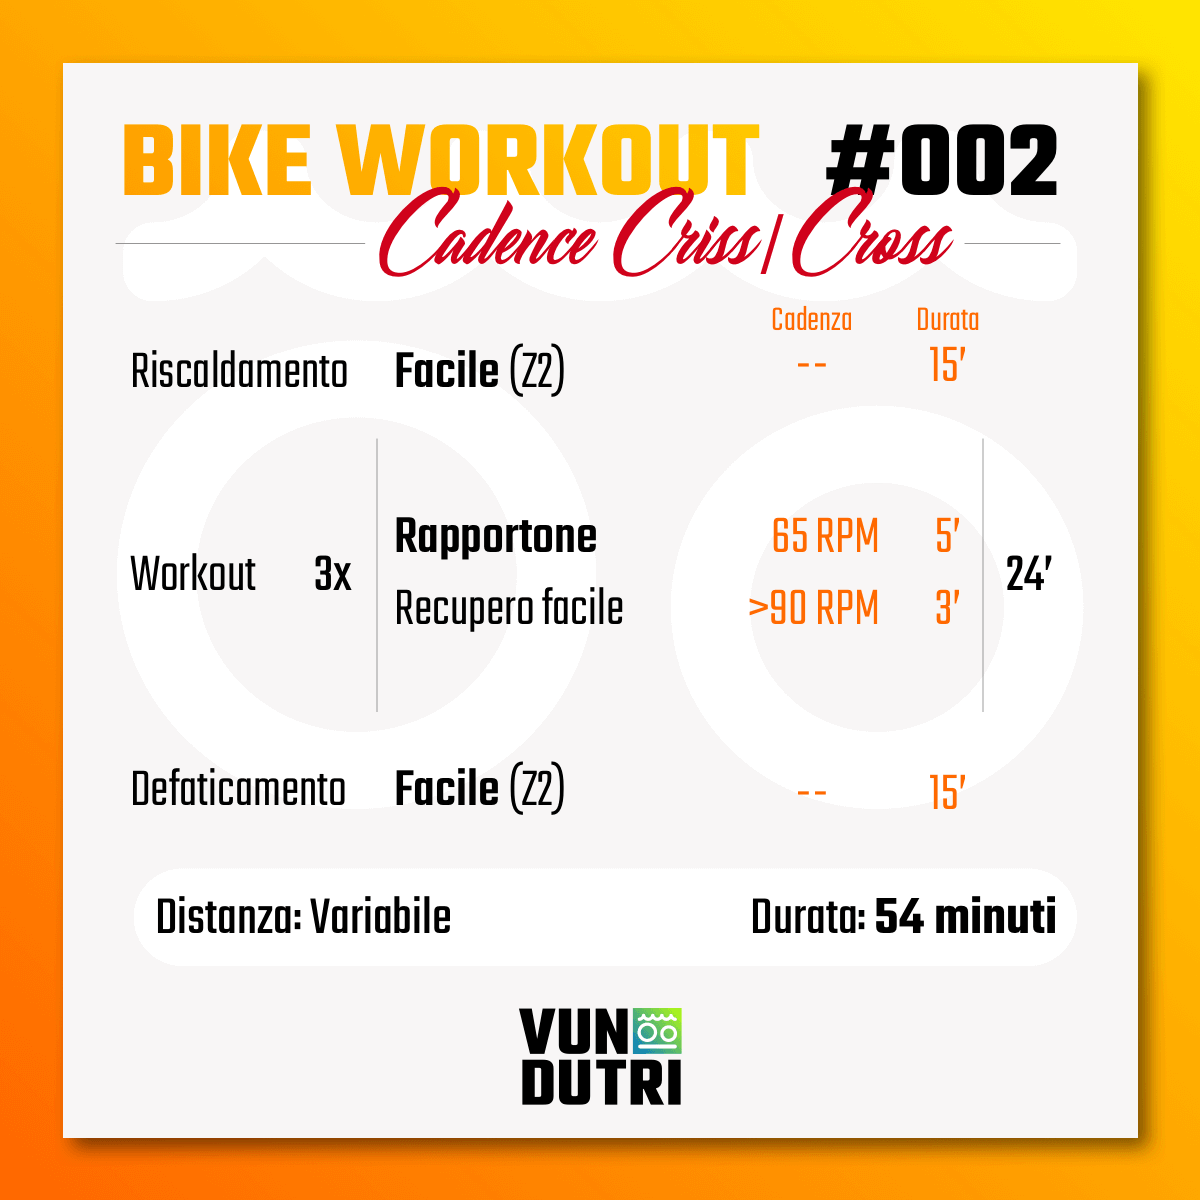 Bike Workout 002 - Cadence Criss/Cross